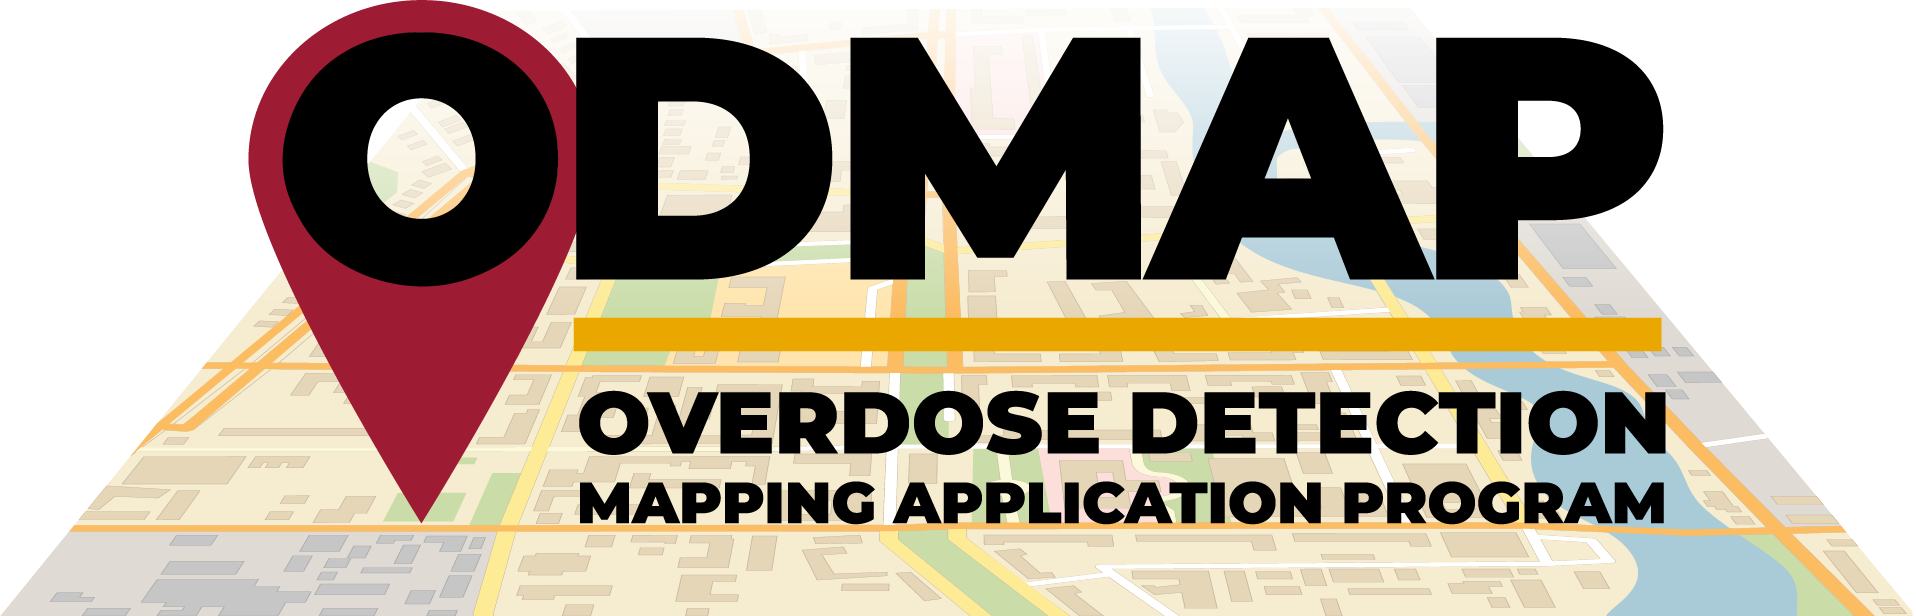 Overdose Detection and Mapping Application Program